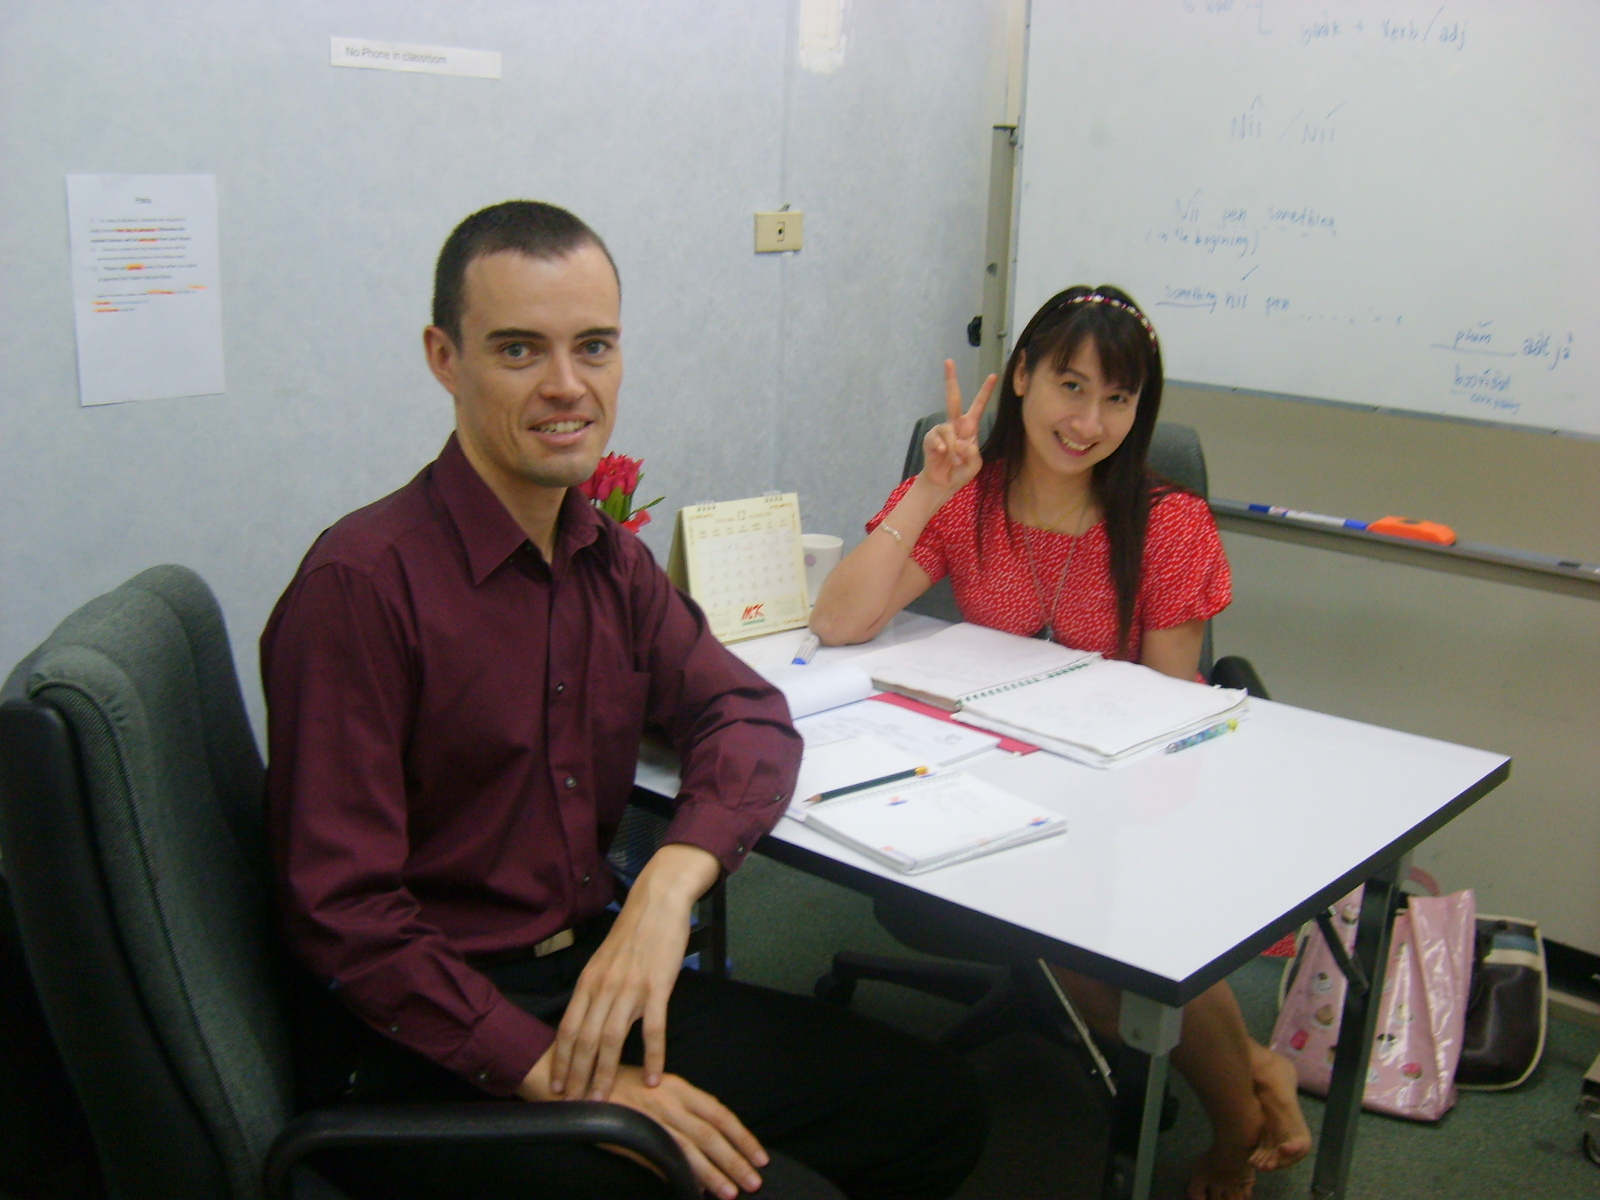 Thai teacher with student who work at UN Thailand